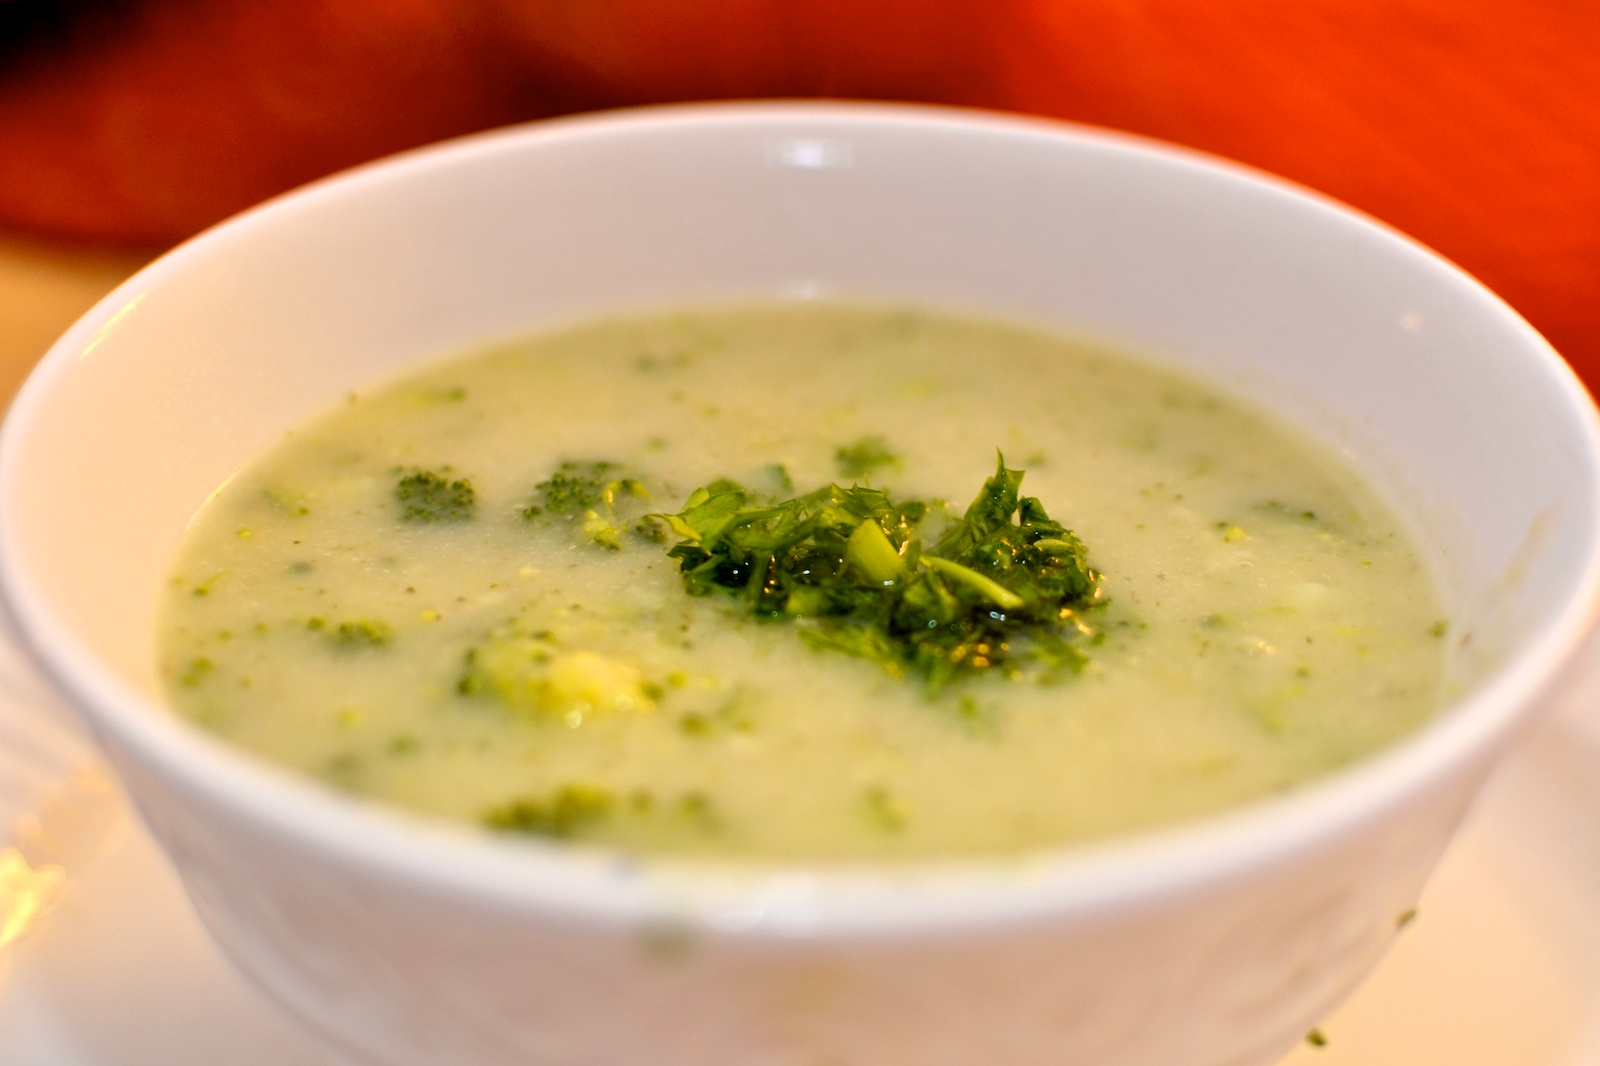 ... or not soup is vegan cream of broccoli soup i love cream based soups